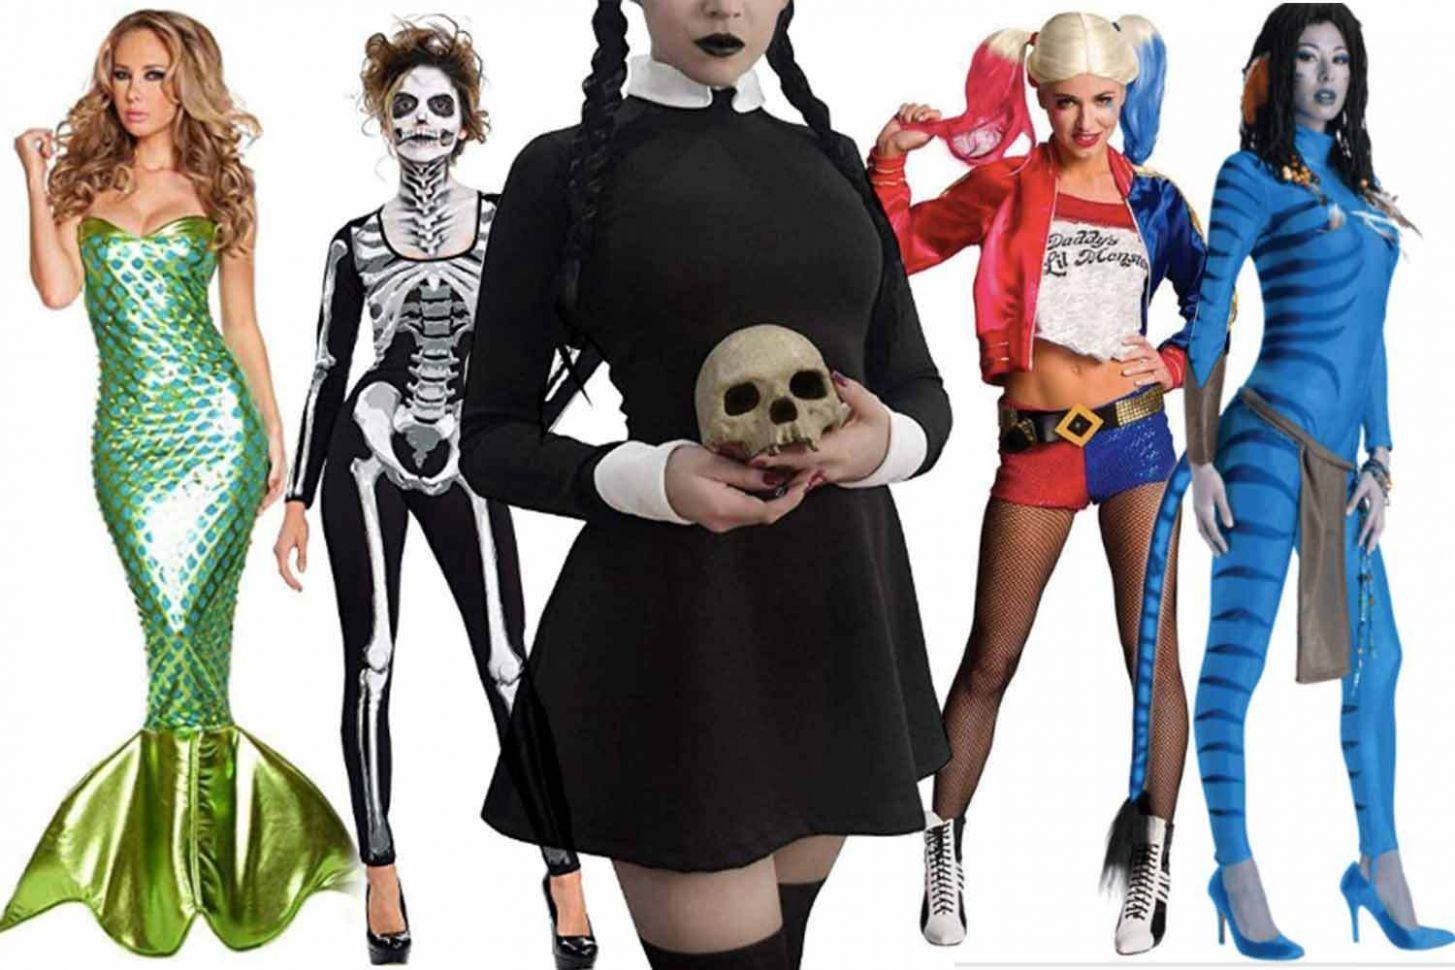 Best Halloween Costumes for Women 9 | The Sun UK - halloween ideas ladies